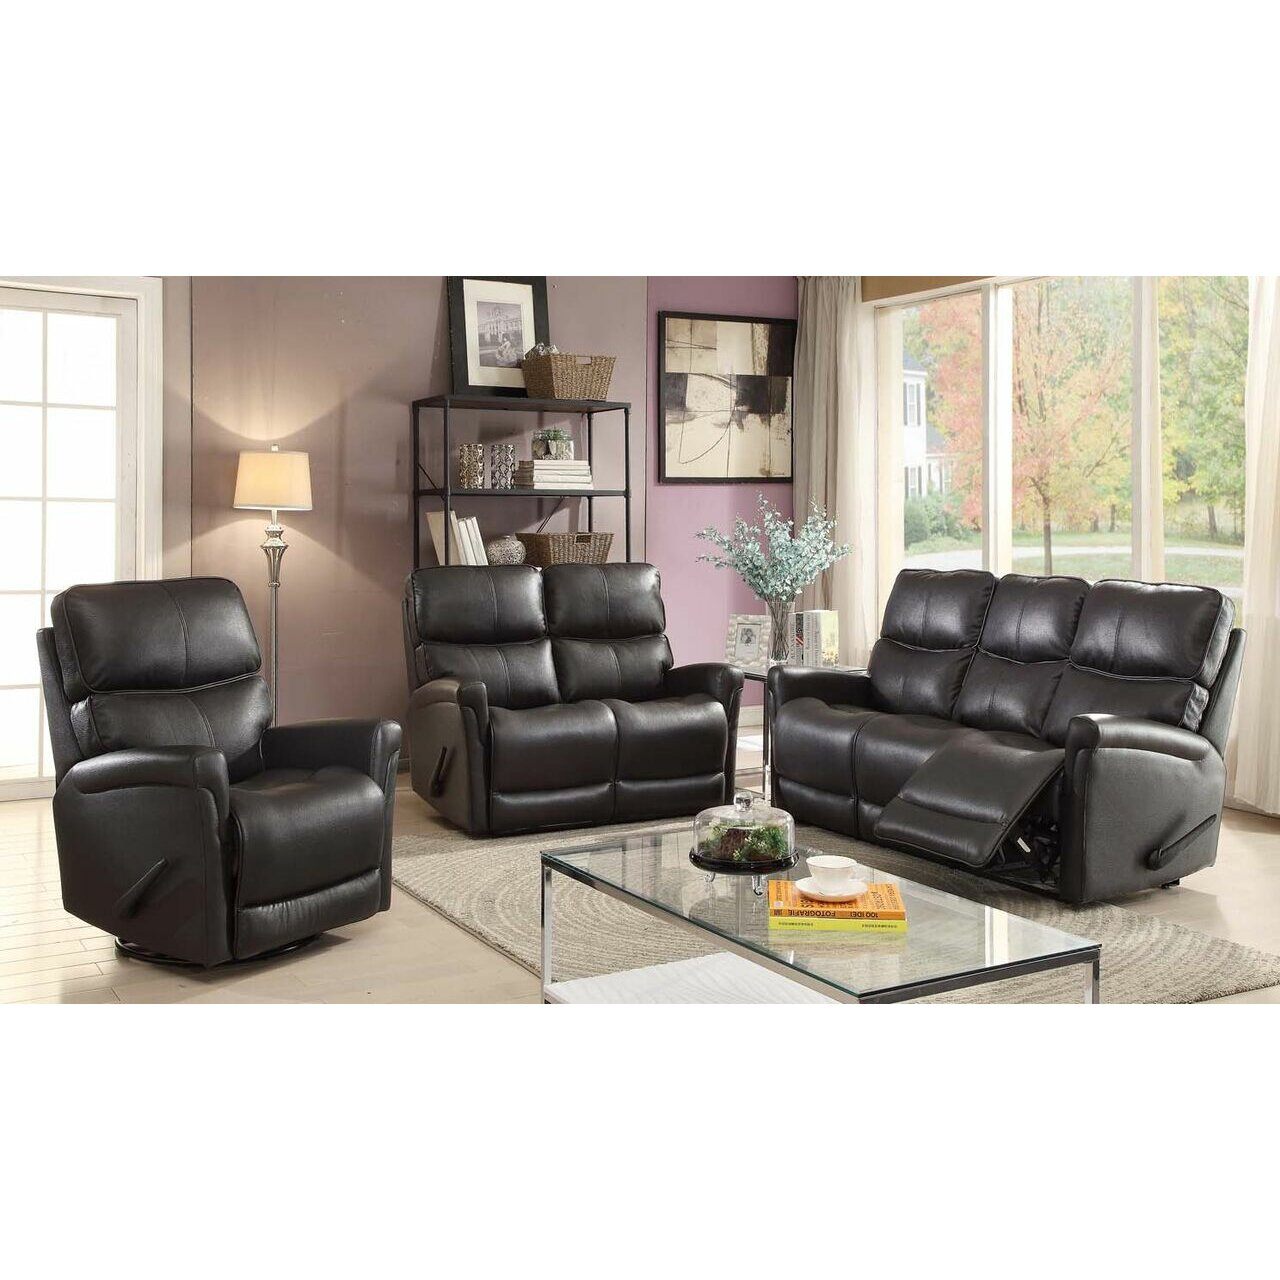 3 piece reclining living room set easy living cologne 3 reclining living room set 23988